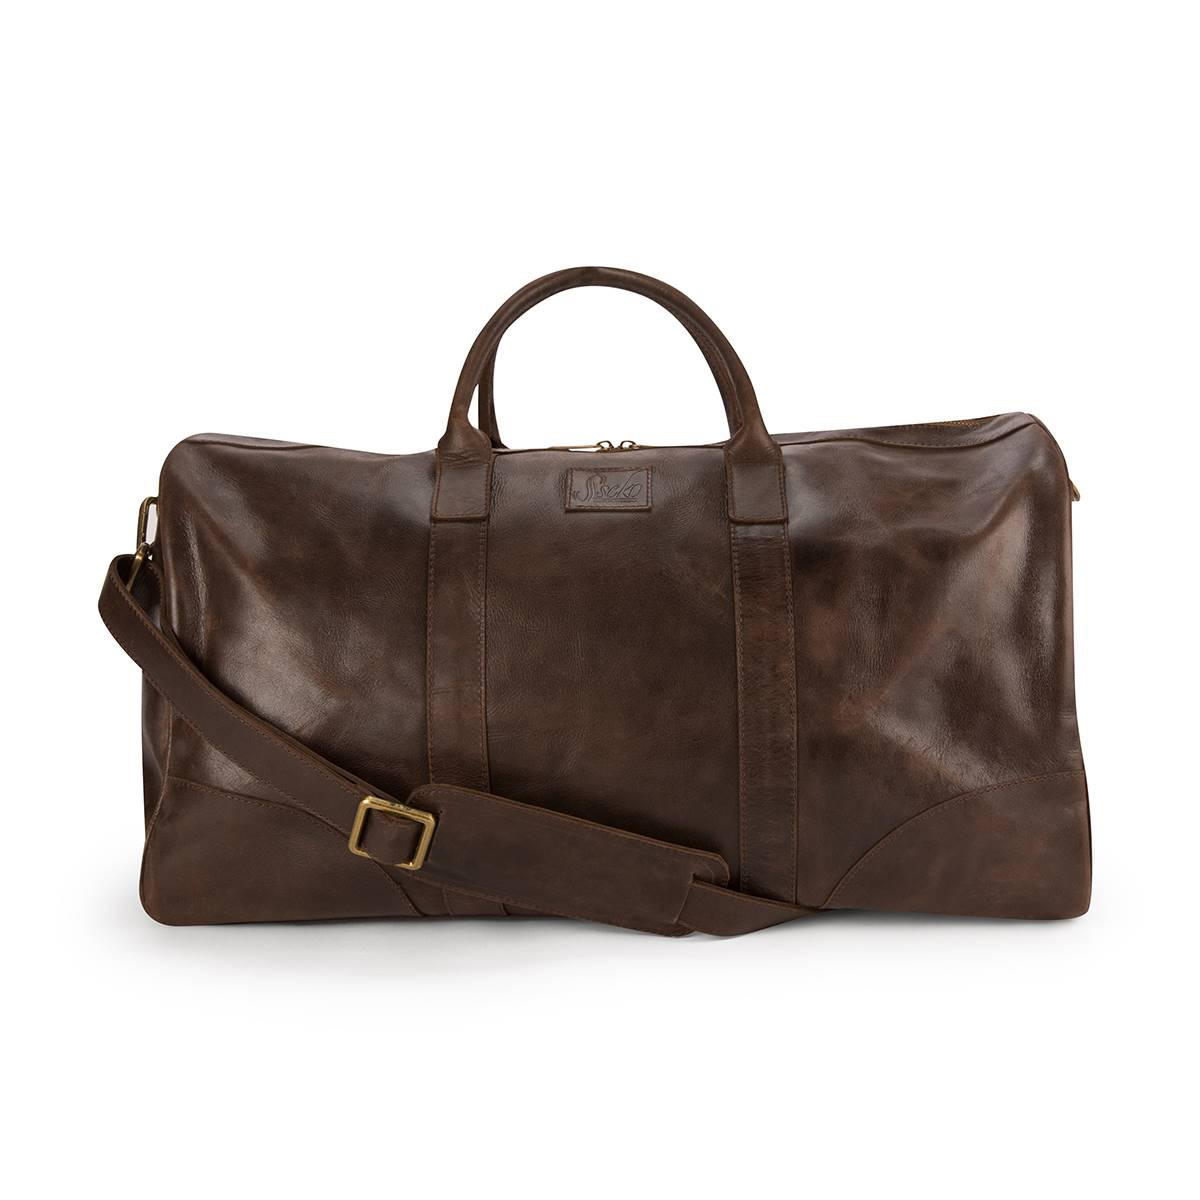 Weekender Duffel Bag in Oiled Chocolate